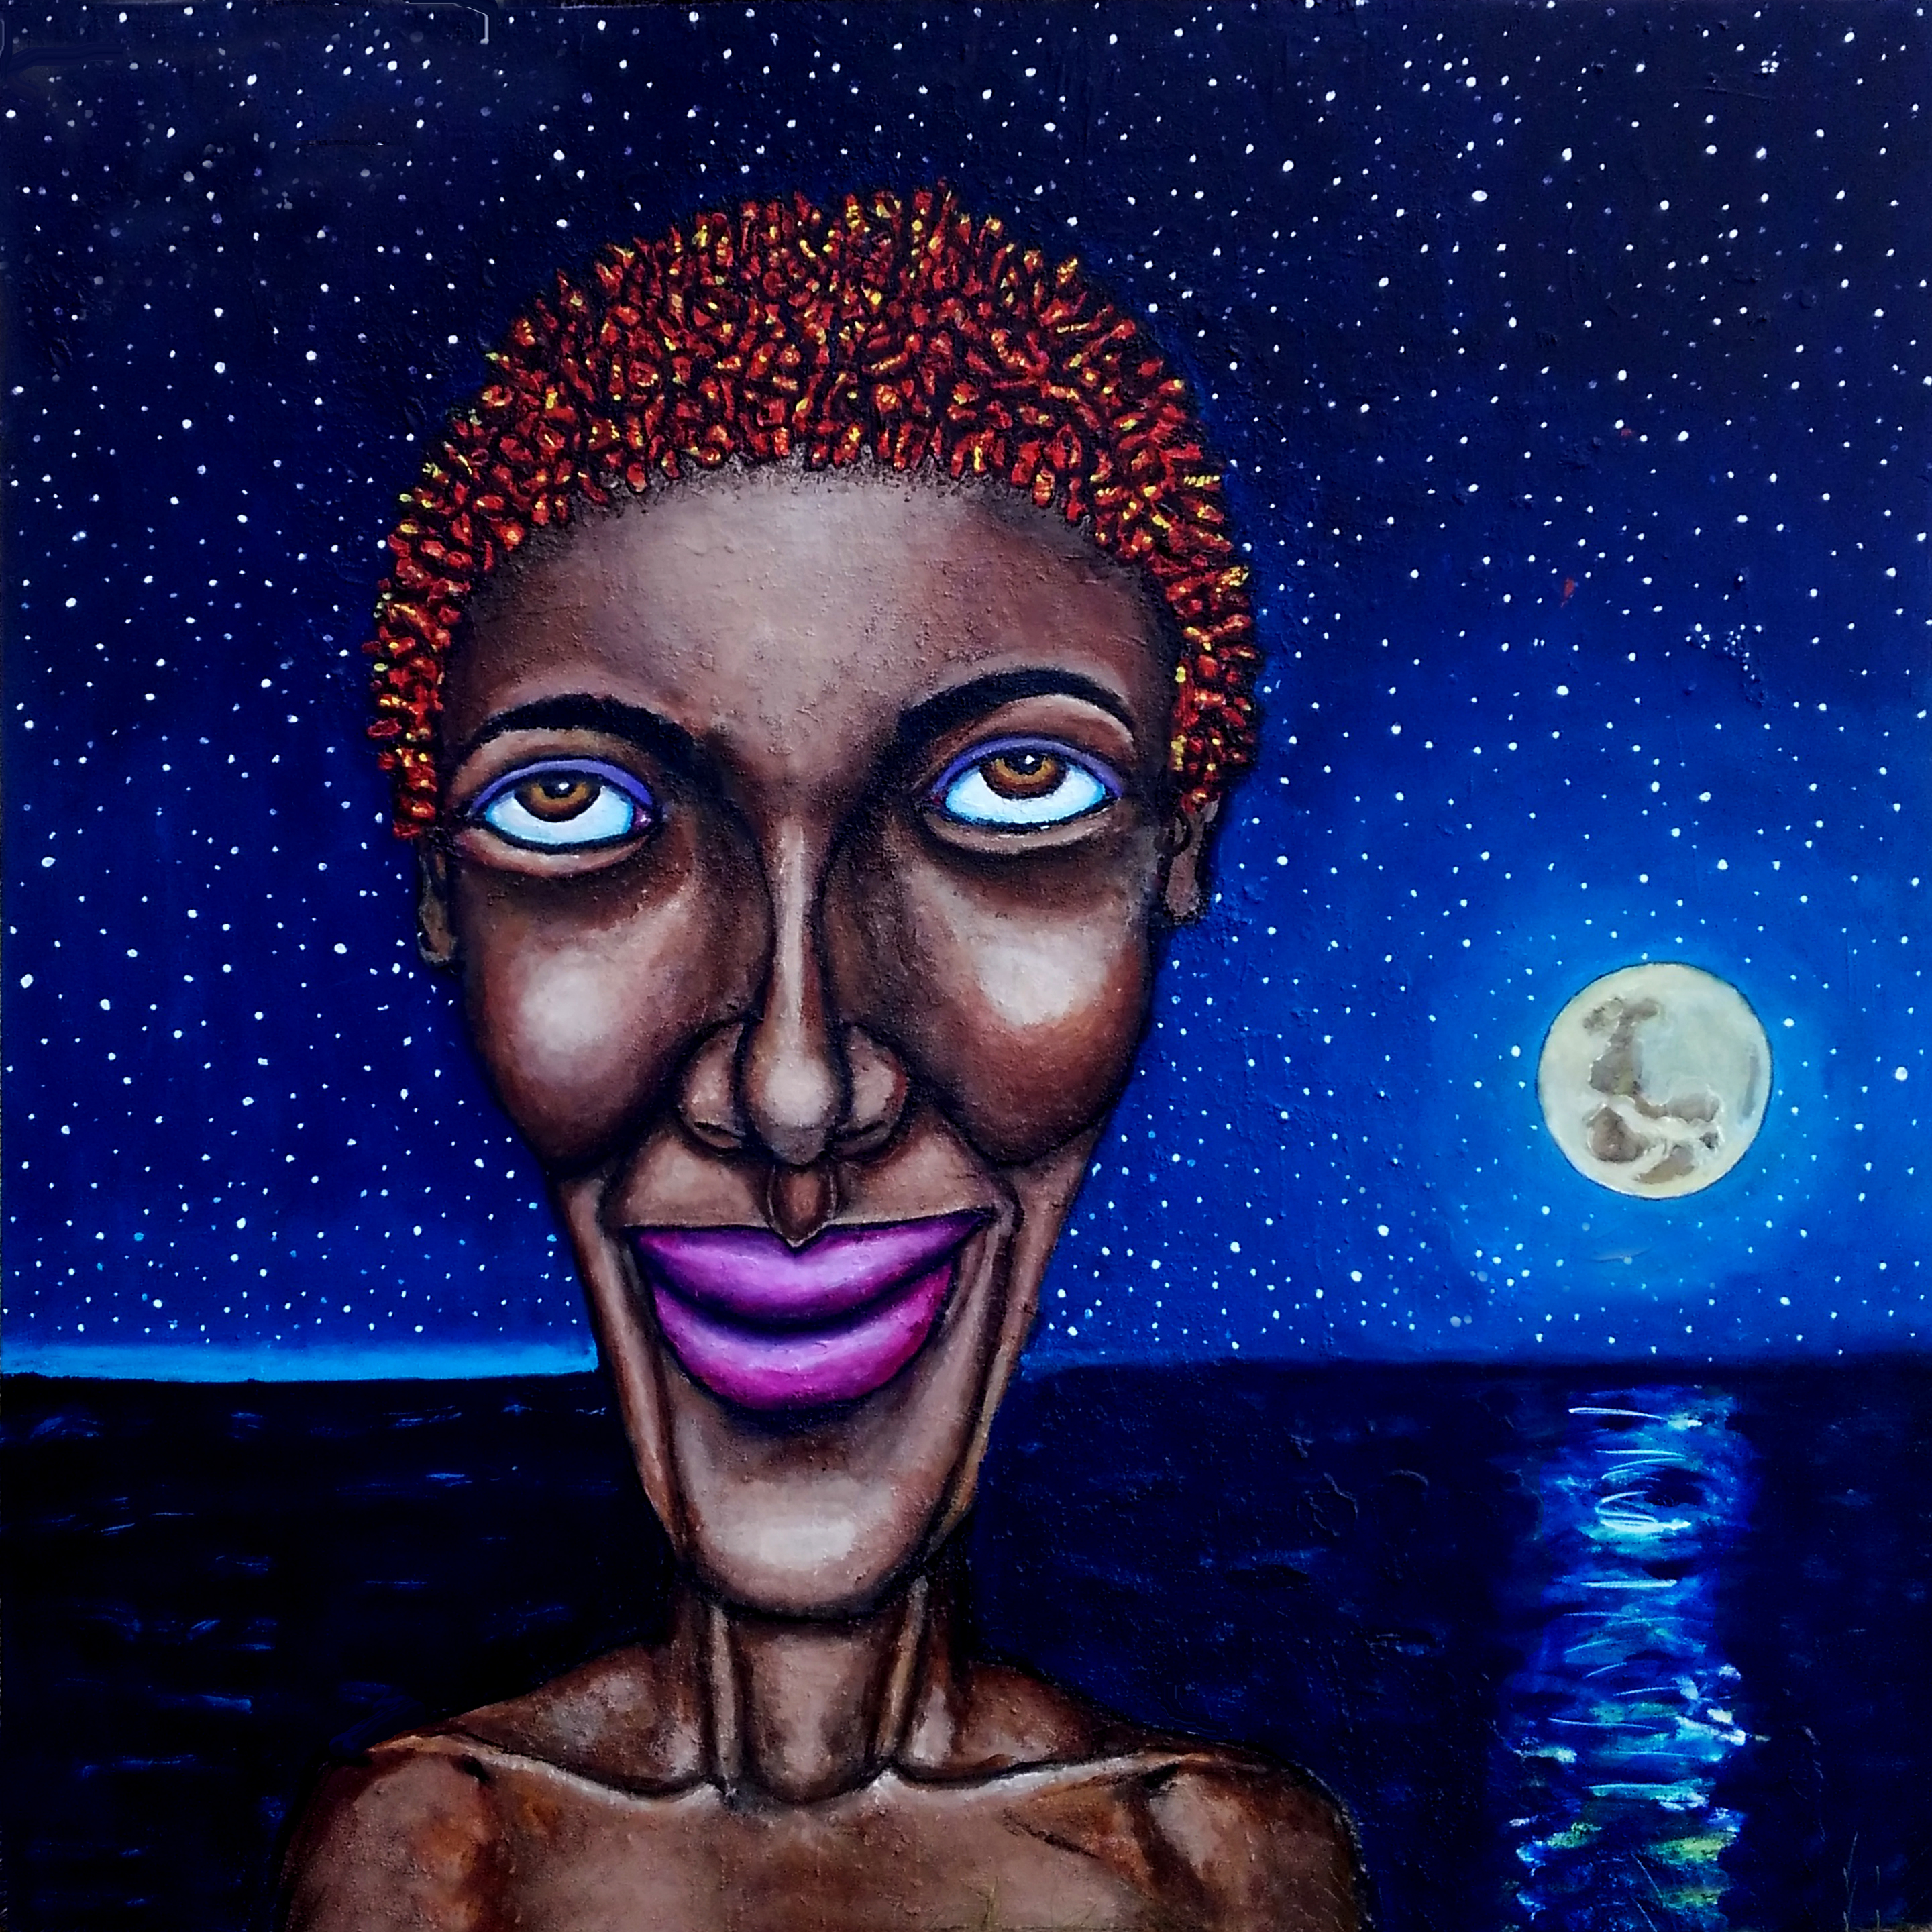 Woman in moonlight